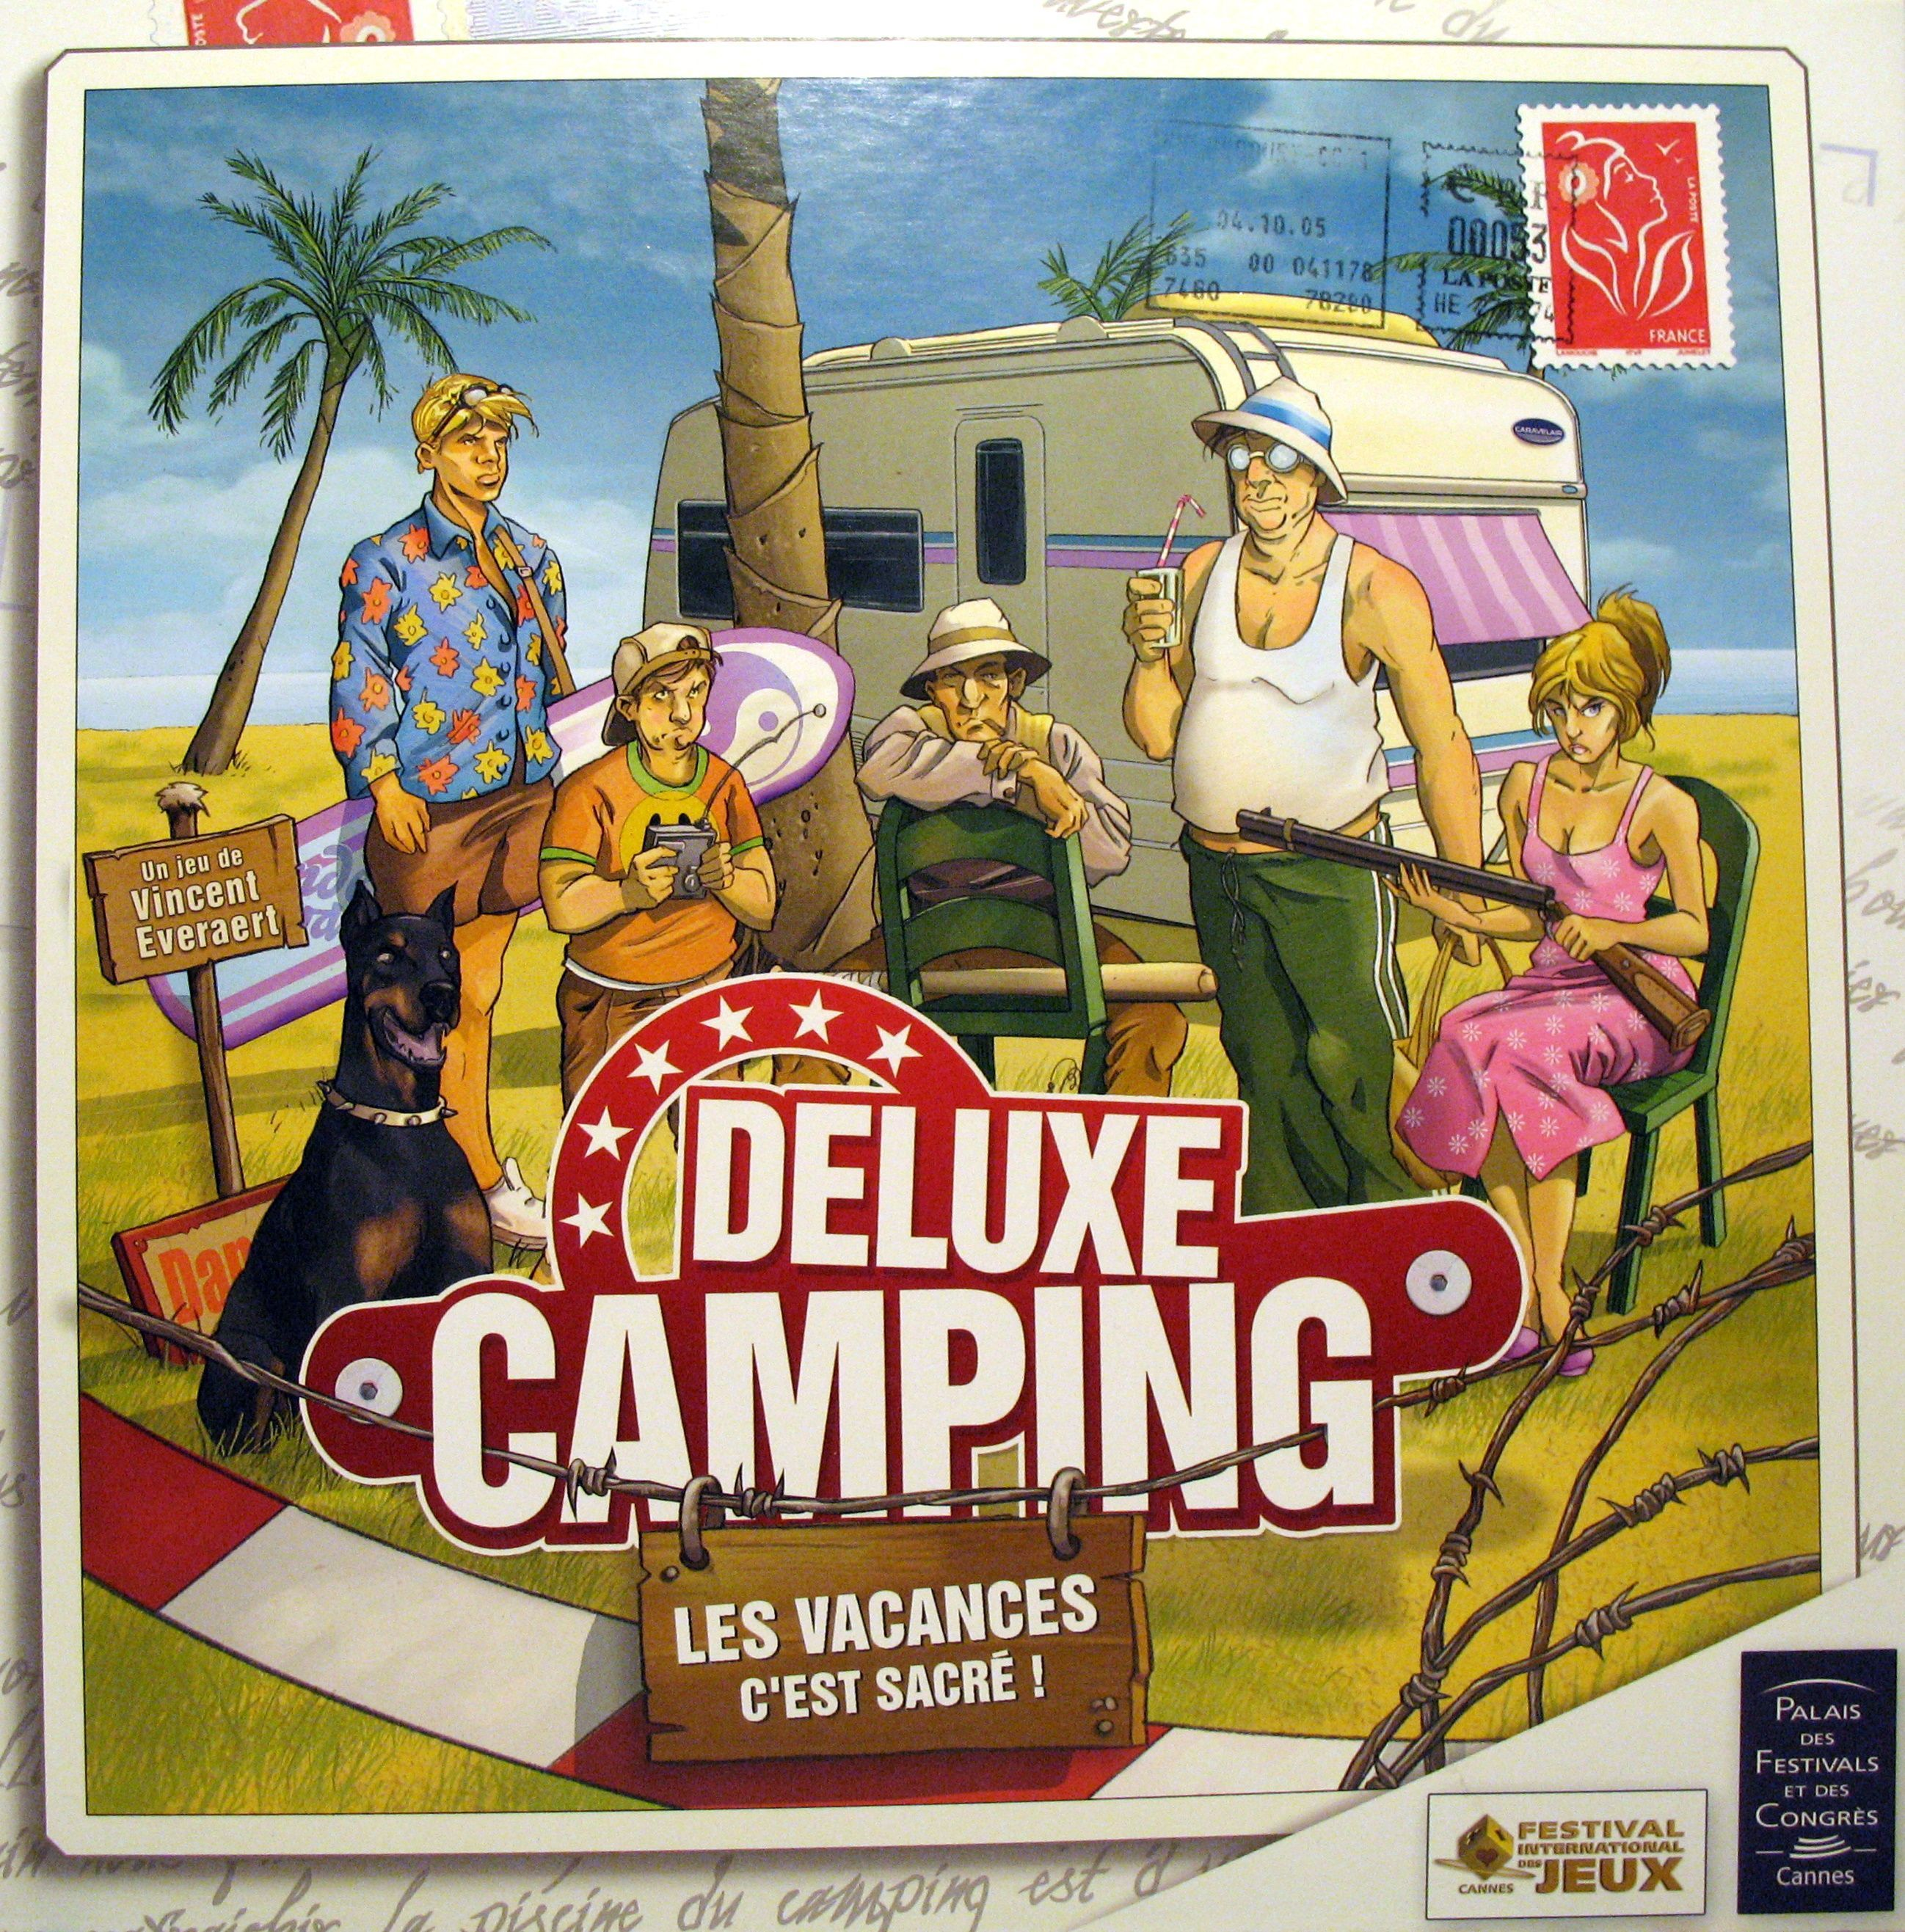 Deluxe Camping